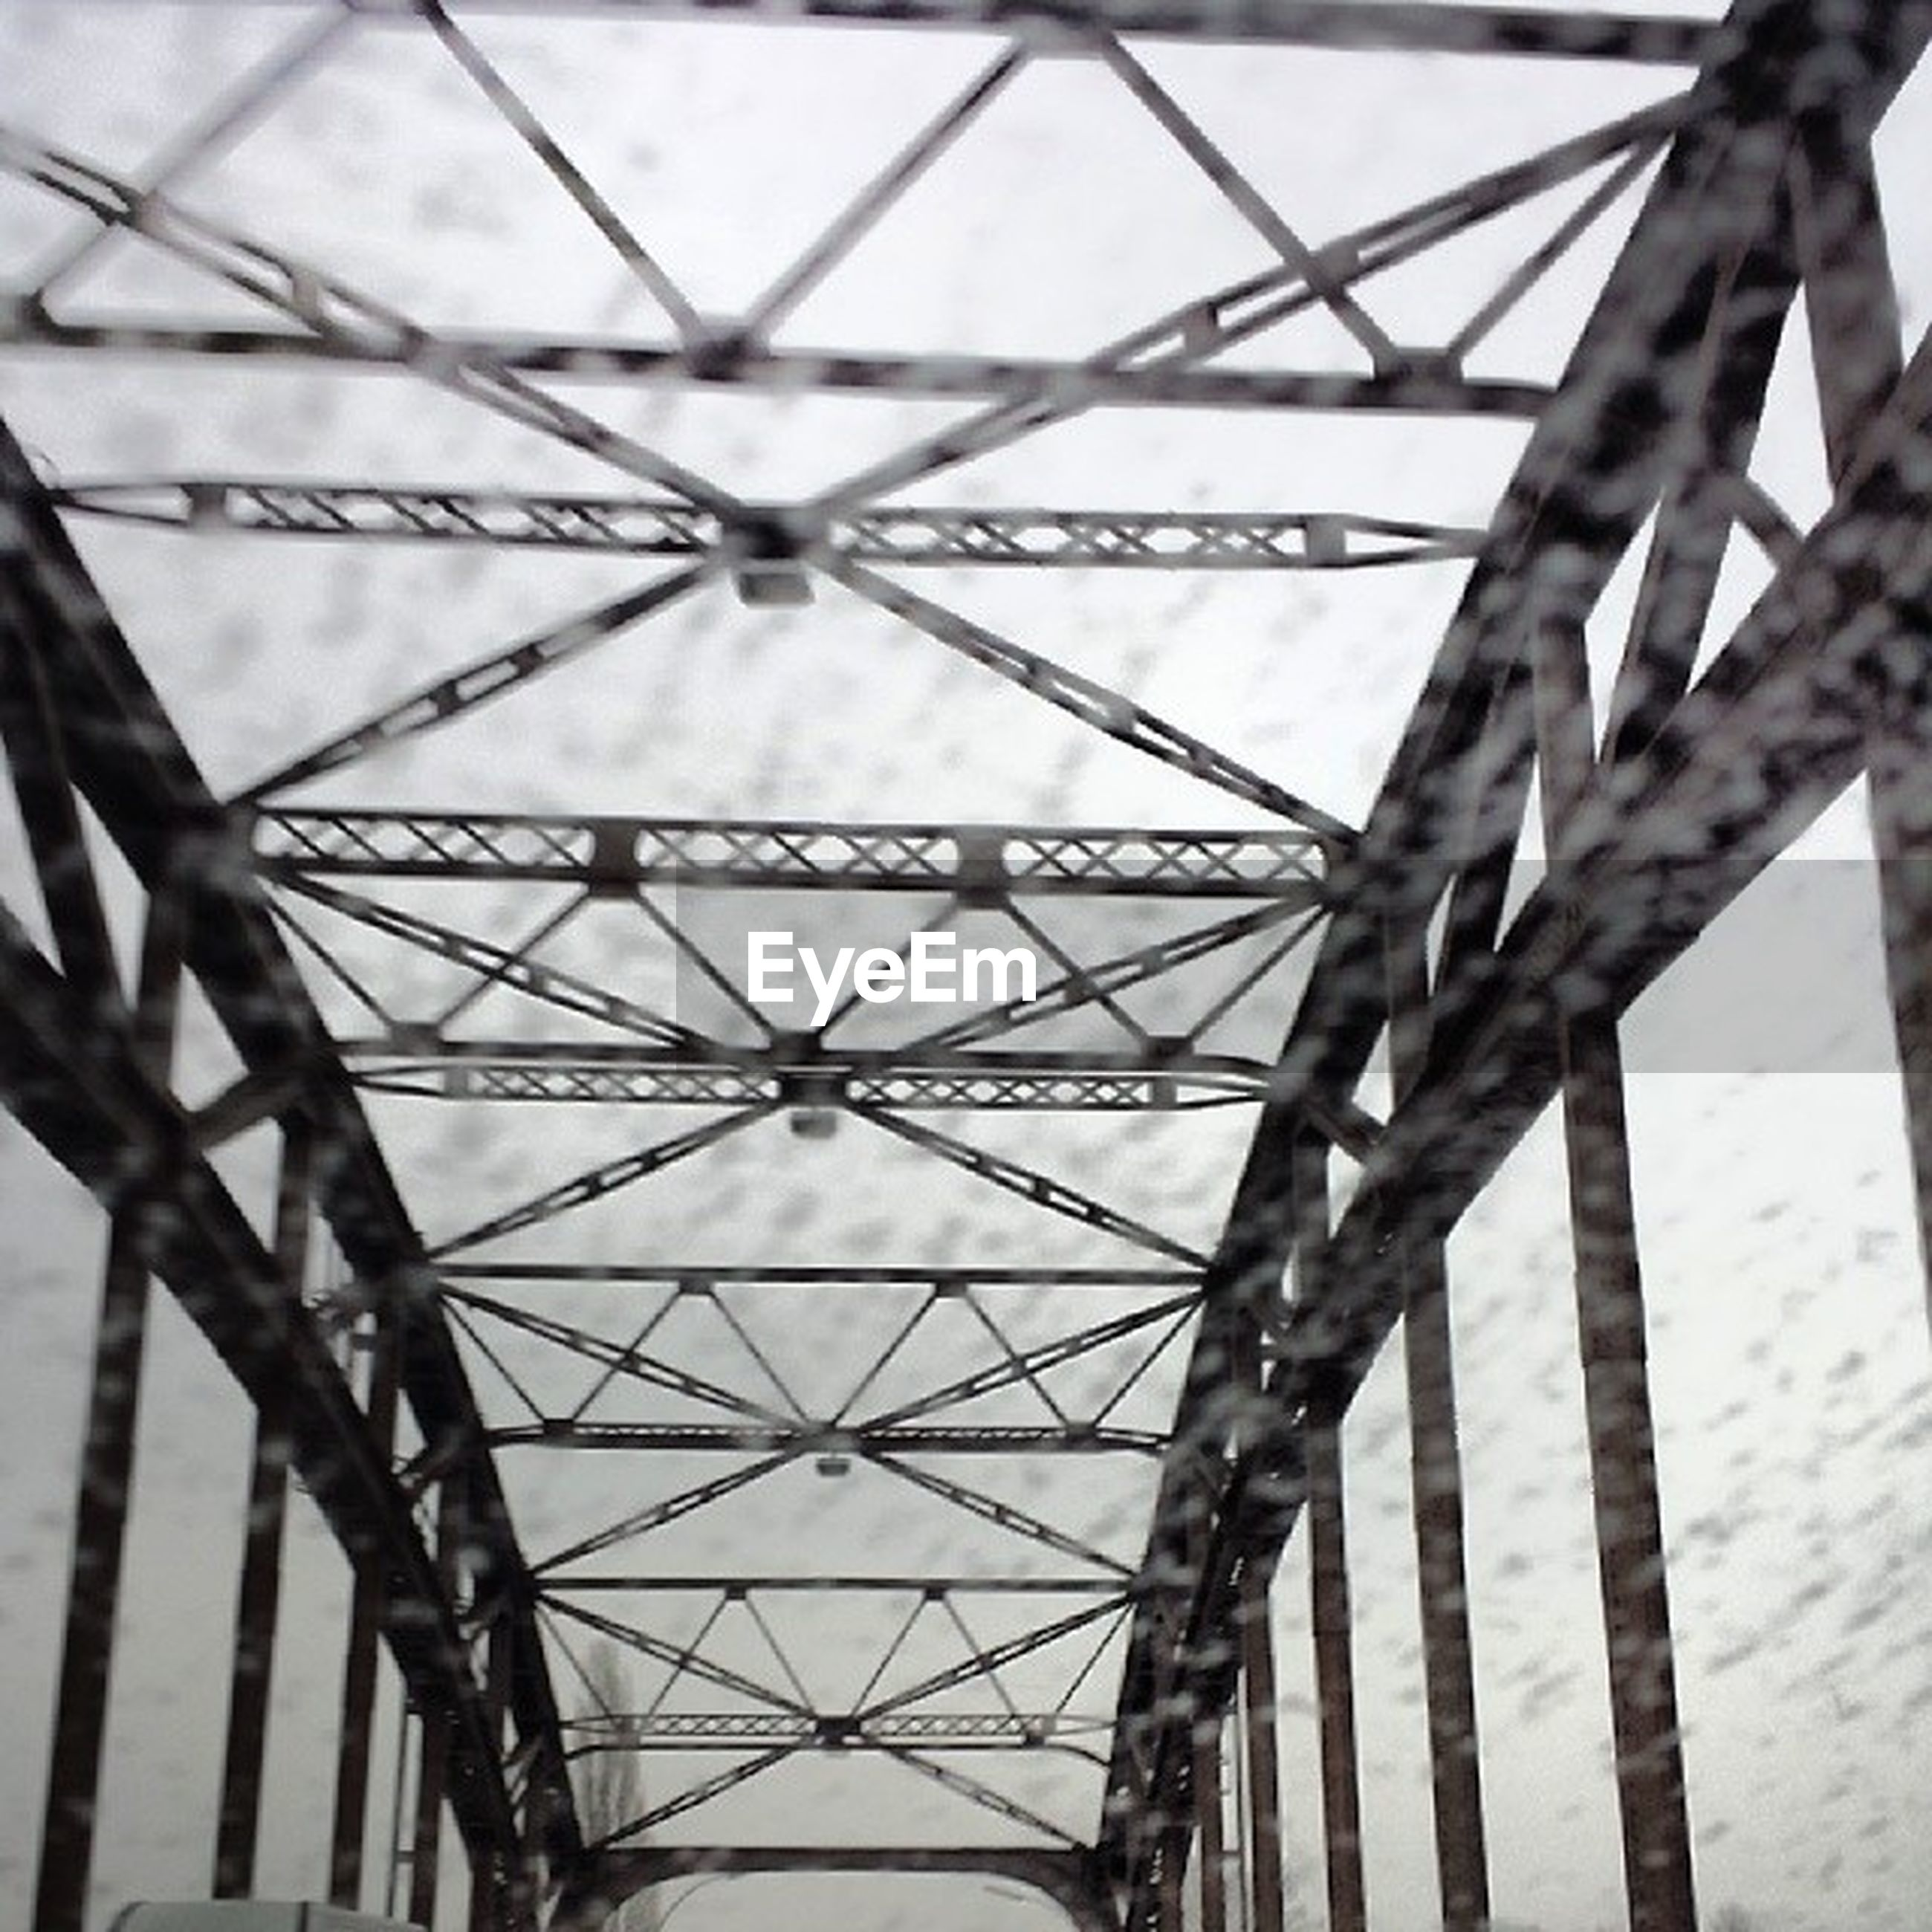 low angle view, metal, connection, built structure, metallic, architecture, engineering, pattern, sky, grid, day, no people, directly below, electricity pylon, outdoors, bridge - man made structure, design, diminishing perspective, close-up